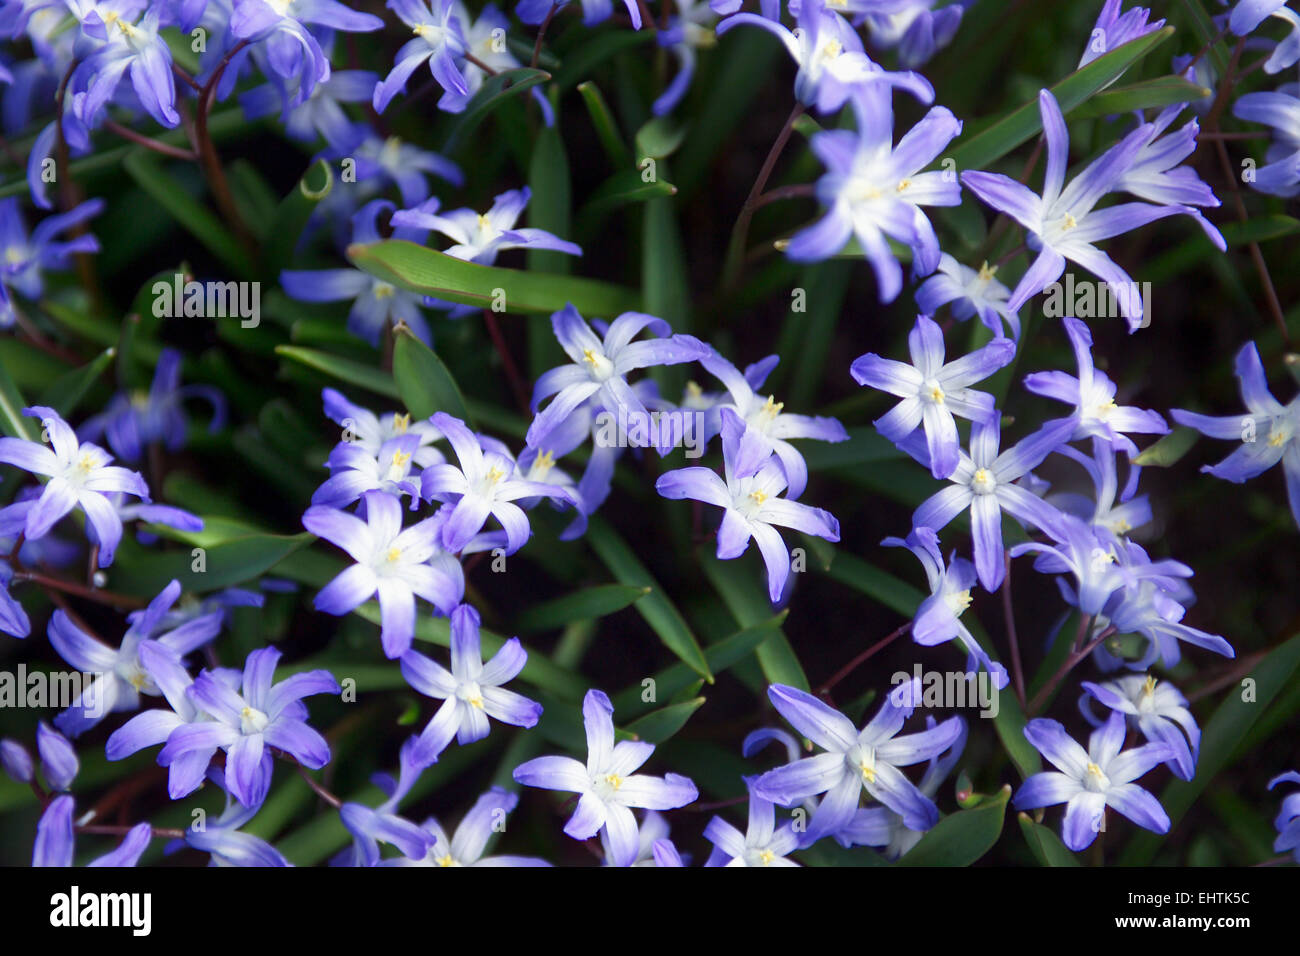 Blue spring flowers / Squill - Stock Image